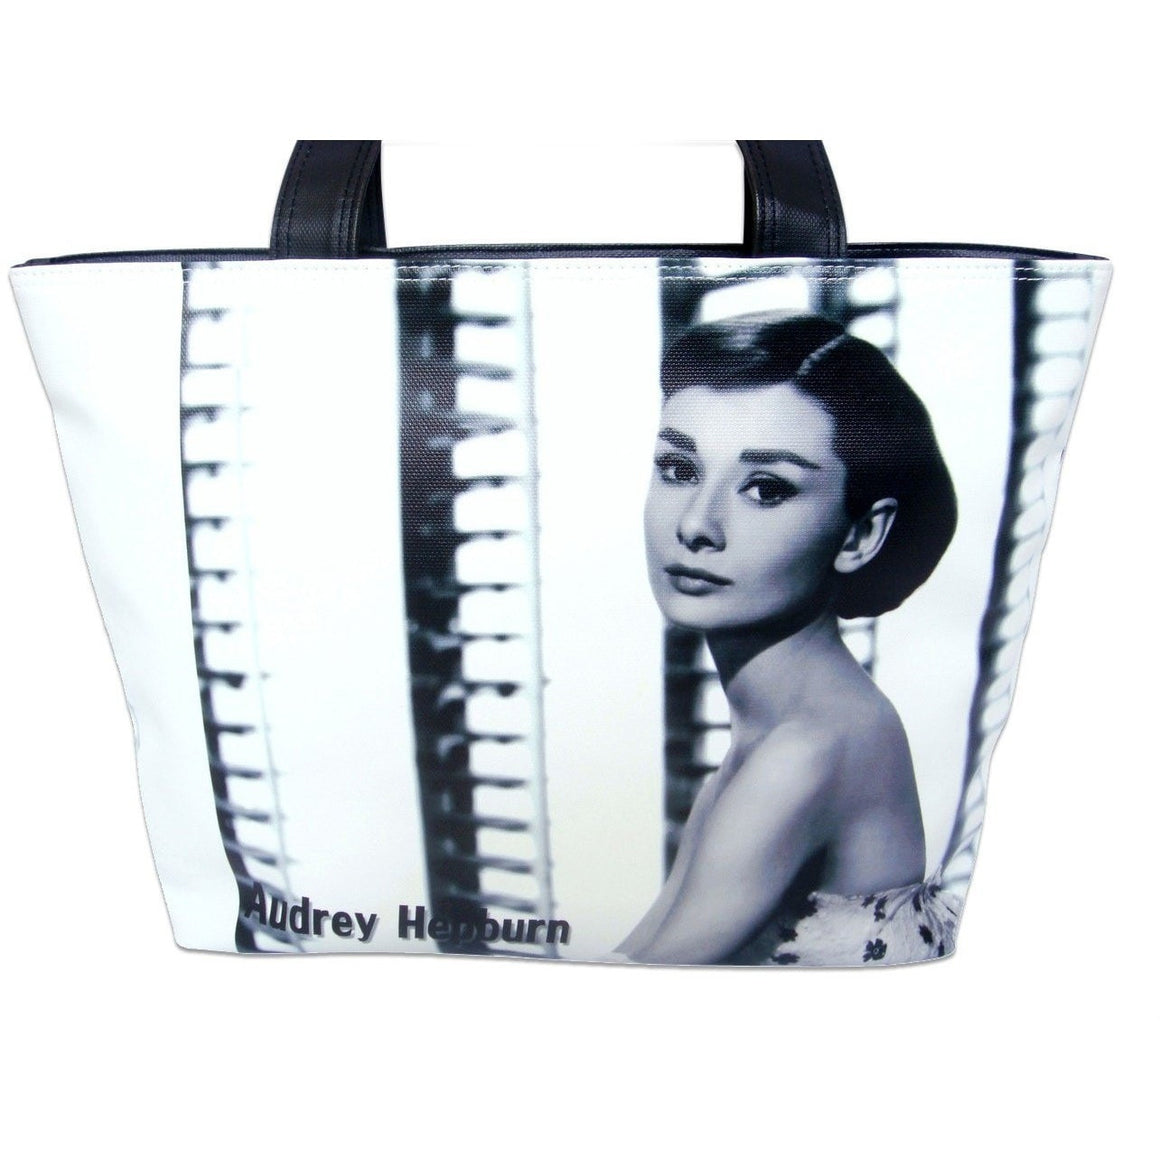 Audrey Hepburn Classic Cinema Retro Movie Tote Shoulder Bag Purse - SilverMania925